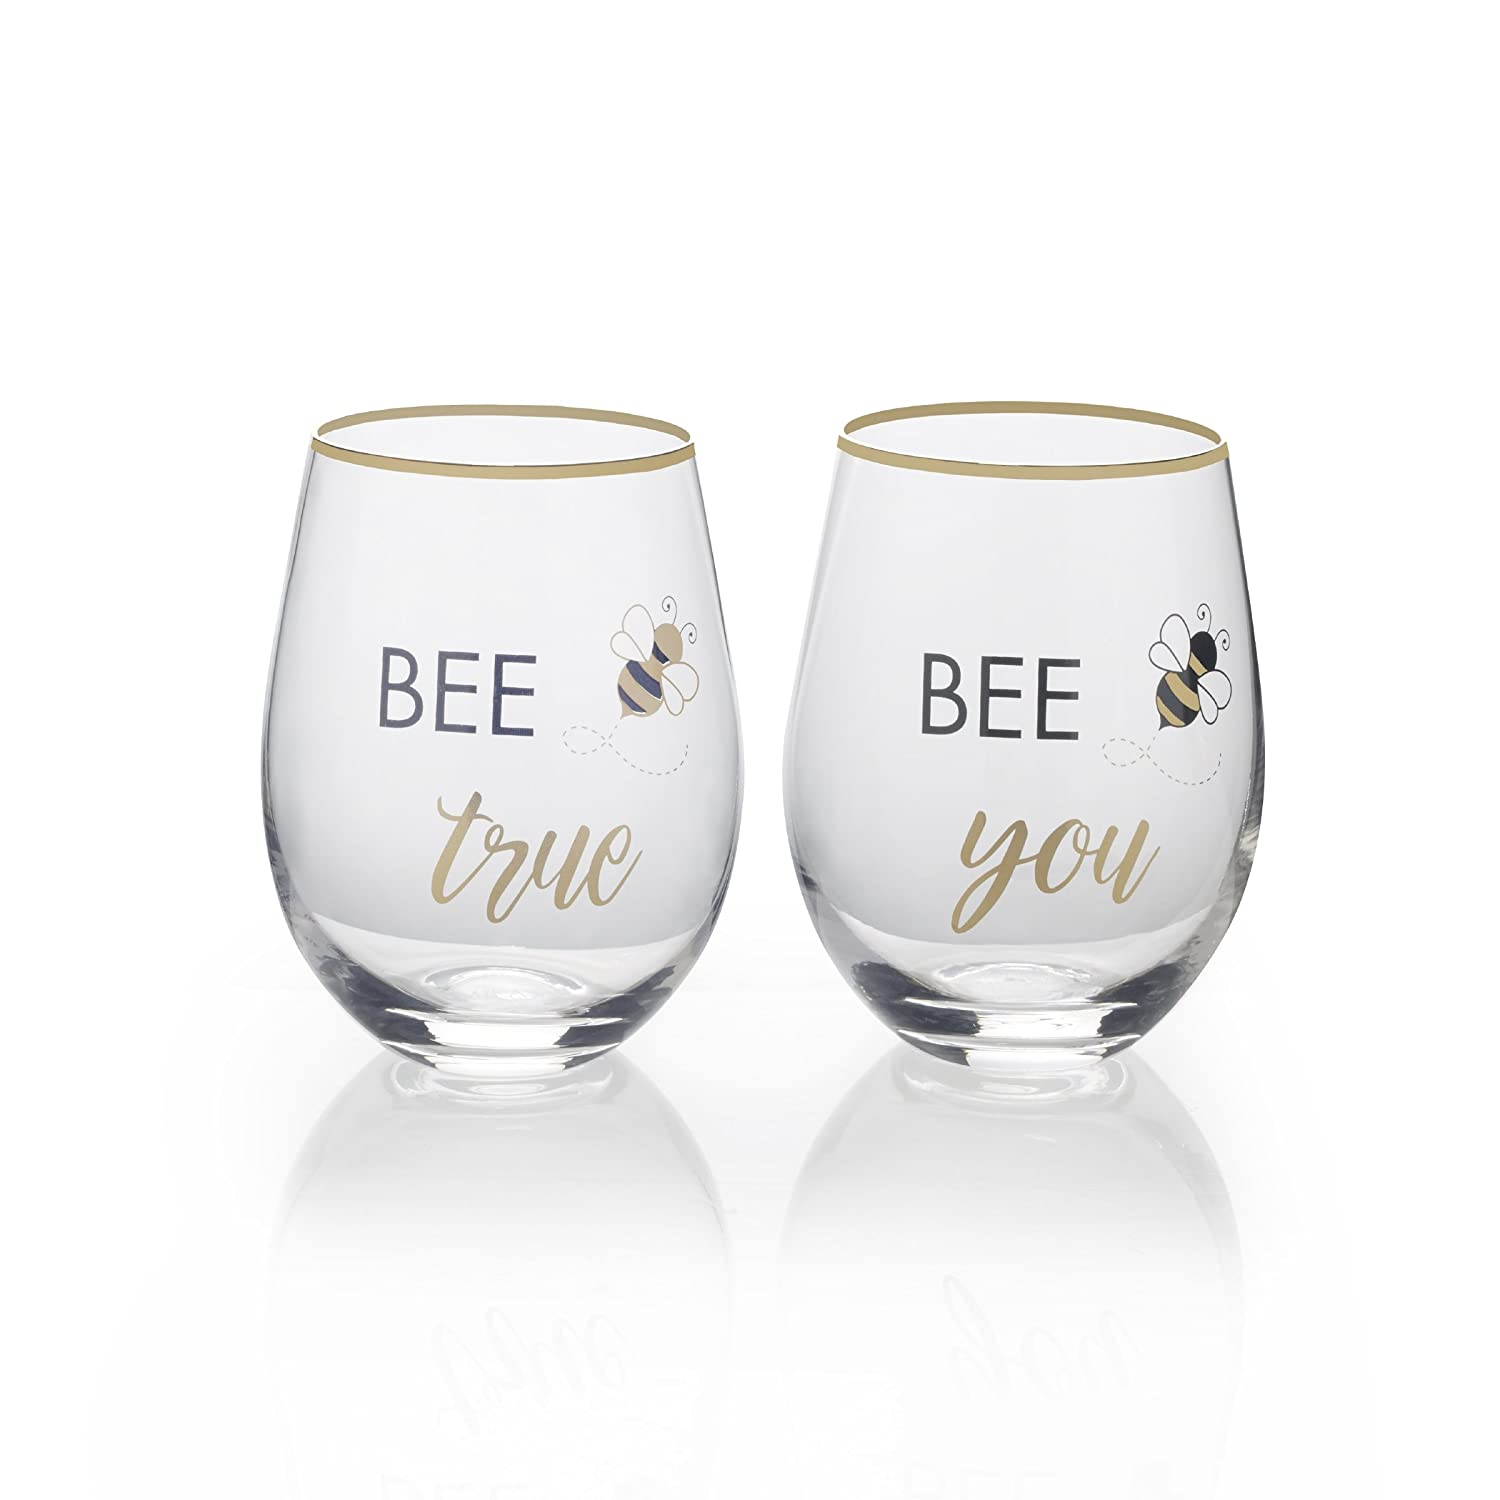 Mikasa Stemless Wine Glass Gift Set Bee True//Bee You 18-Ounce